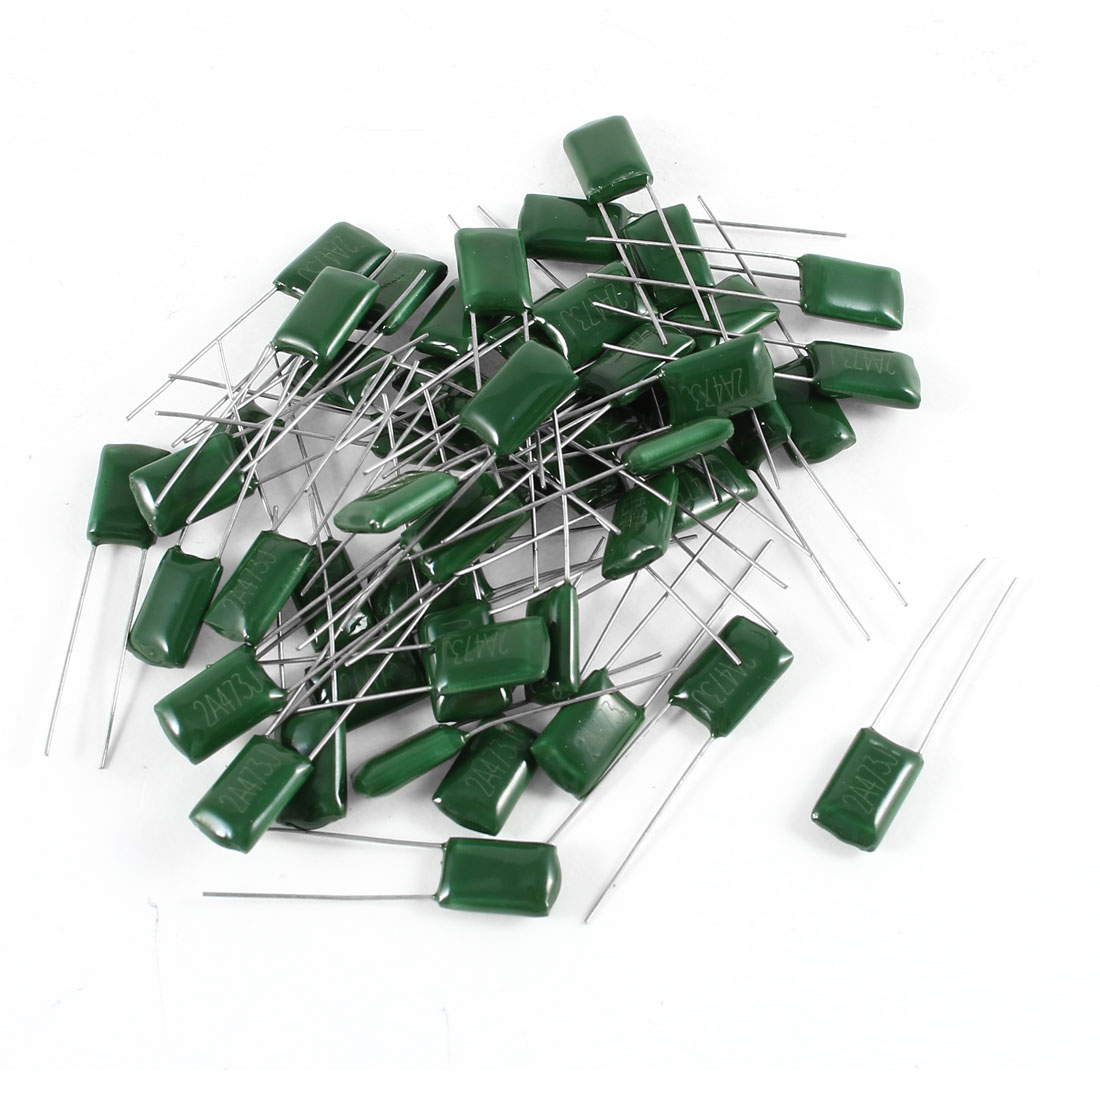 50 Pcs Radial Leads Polyester Film Cap Capacitance Capacitors Green 2A473J 100V 47nF 5%